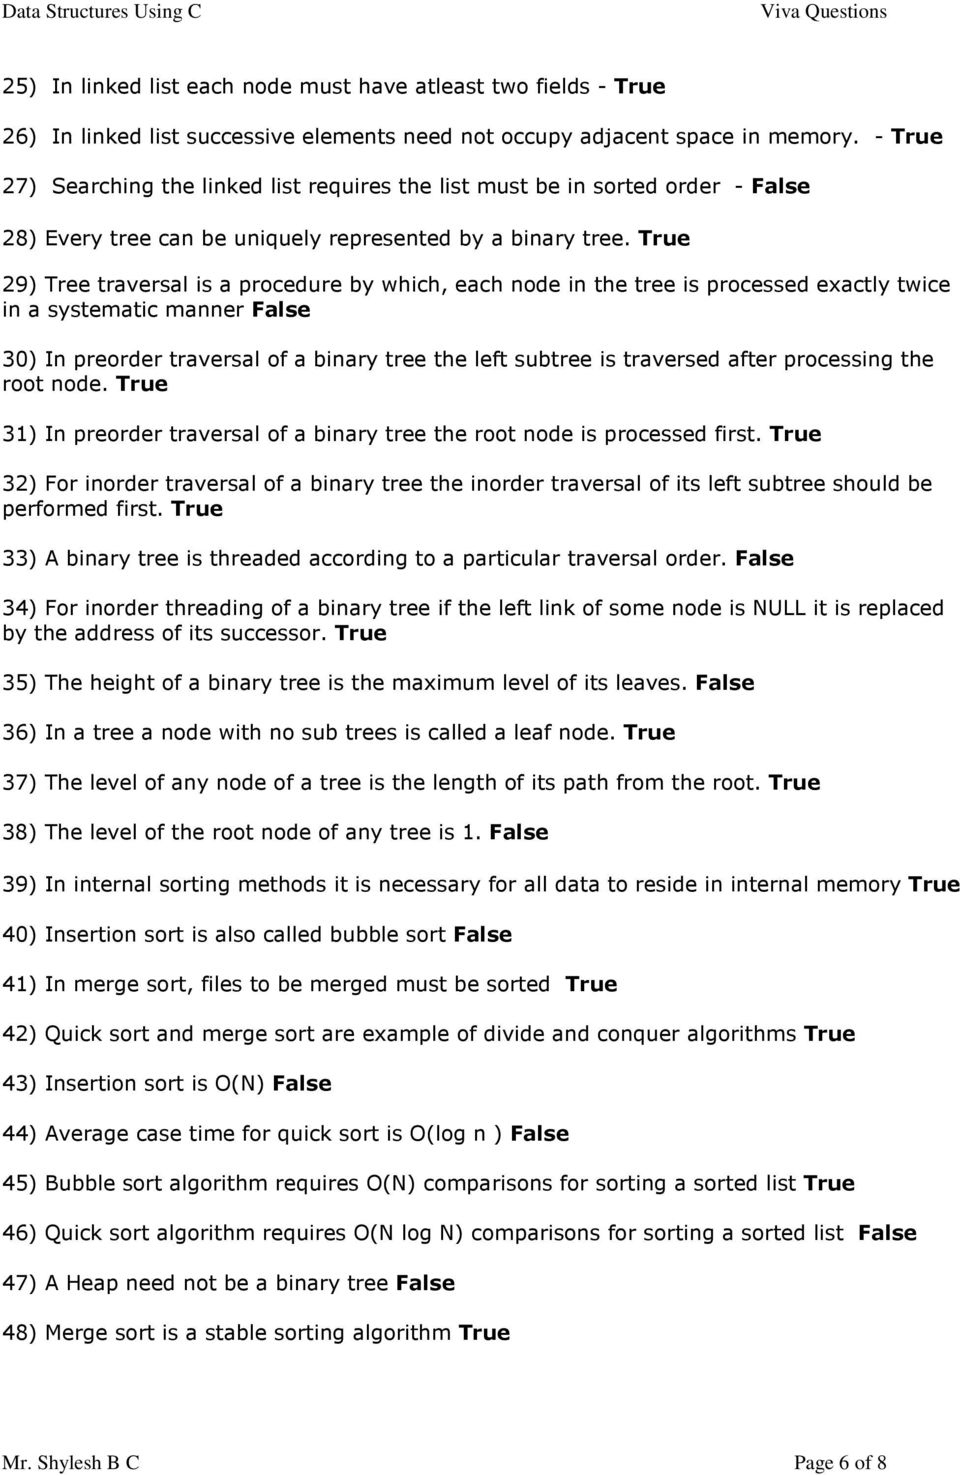 True 29) Tree traversal is a procedure by which, each node in the tree is processed exactly twice in a systematic manner False 30) In preorder traversal of a binary tree the left subtree is traversed